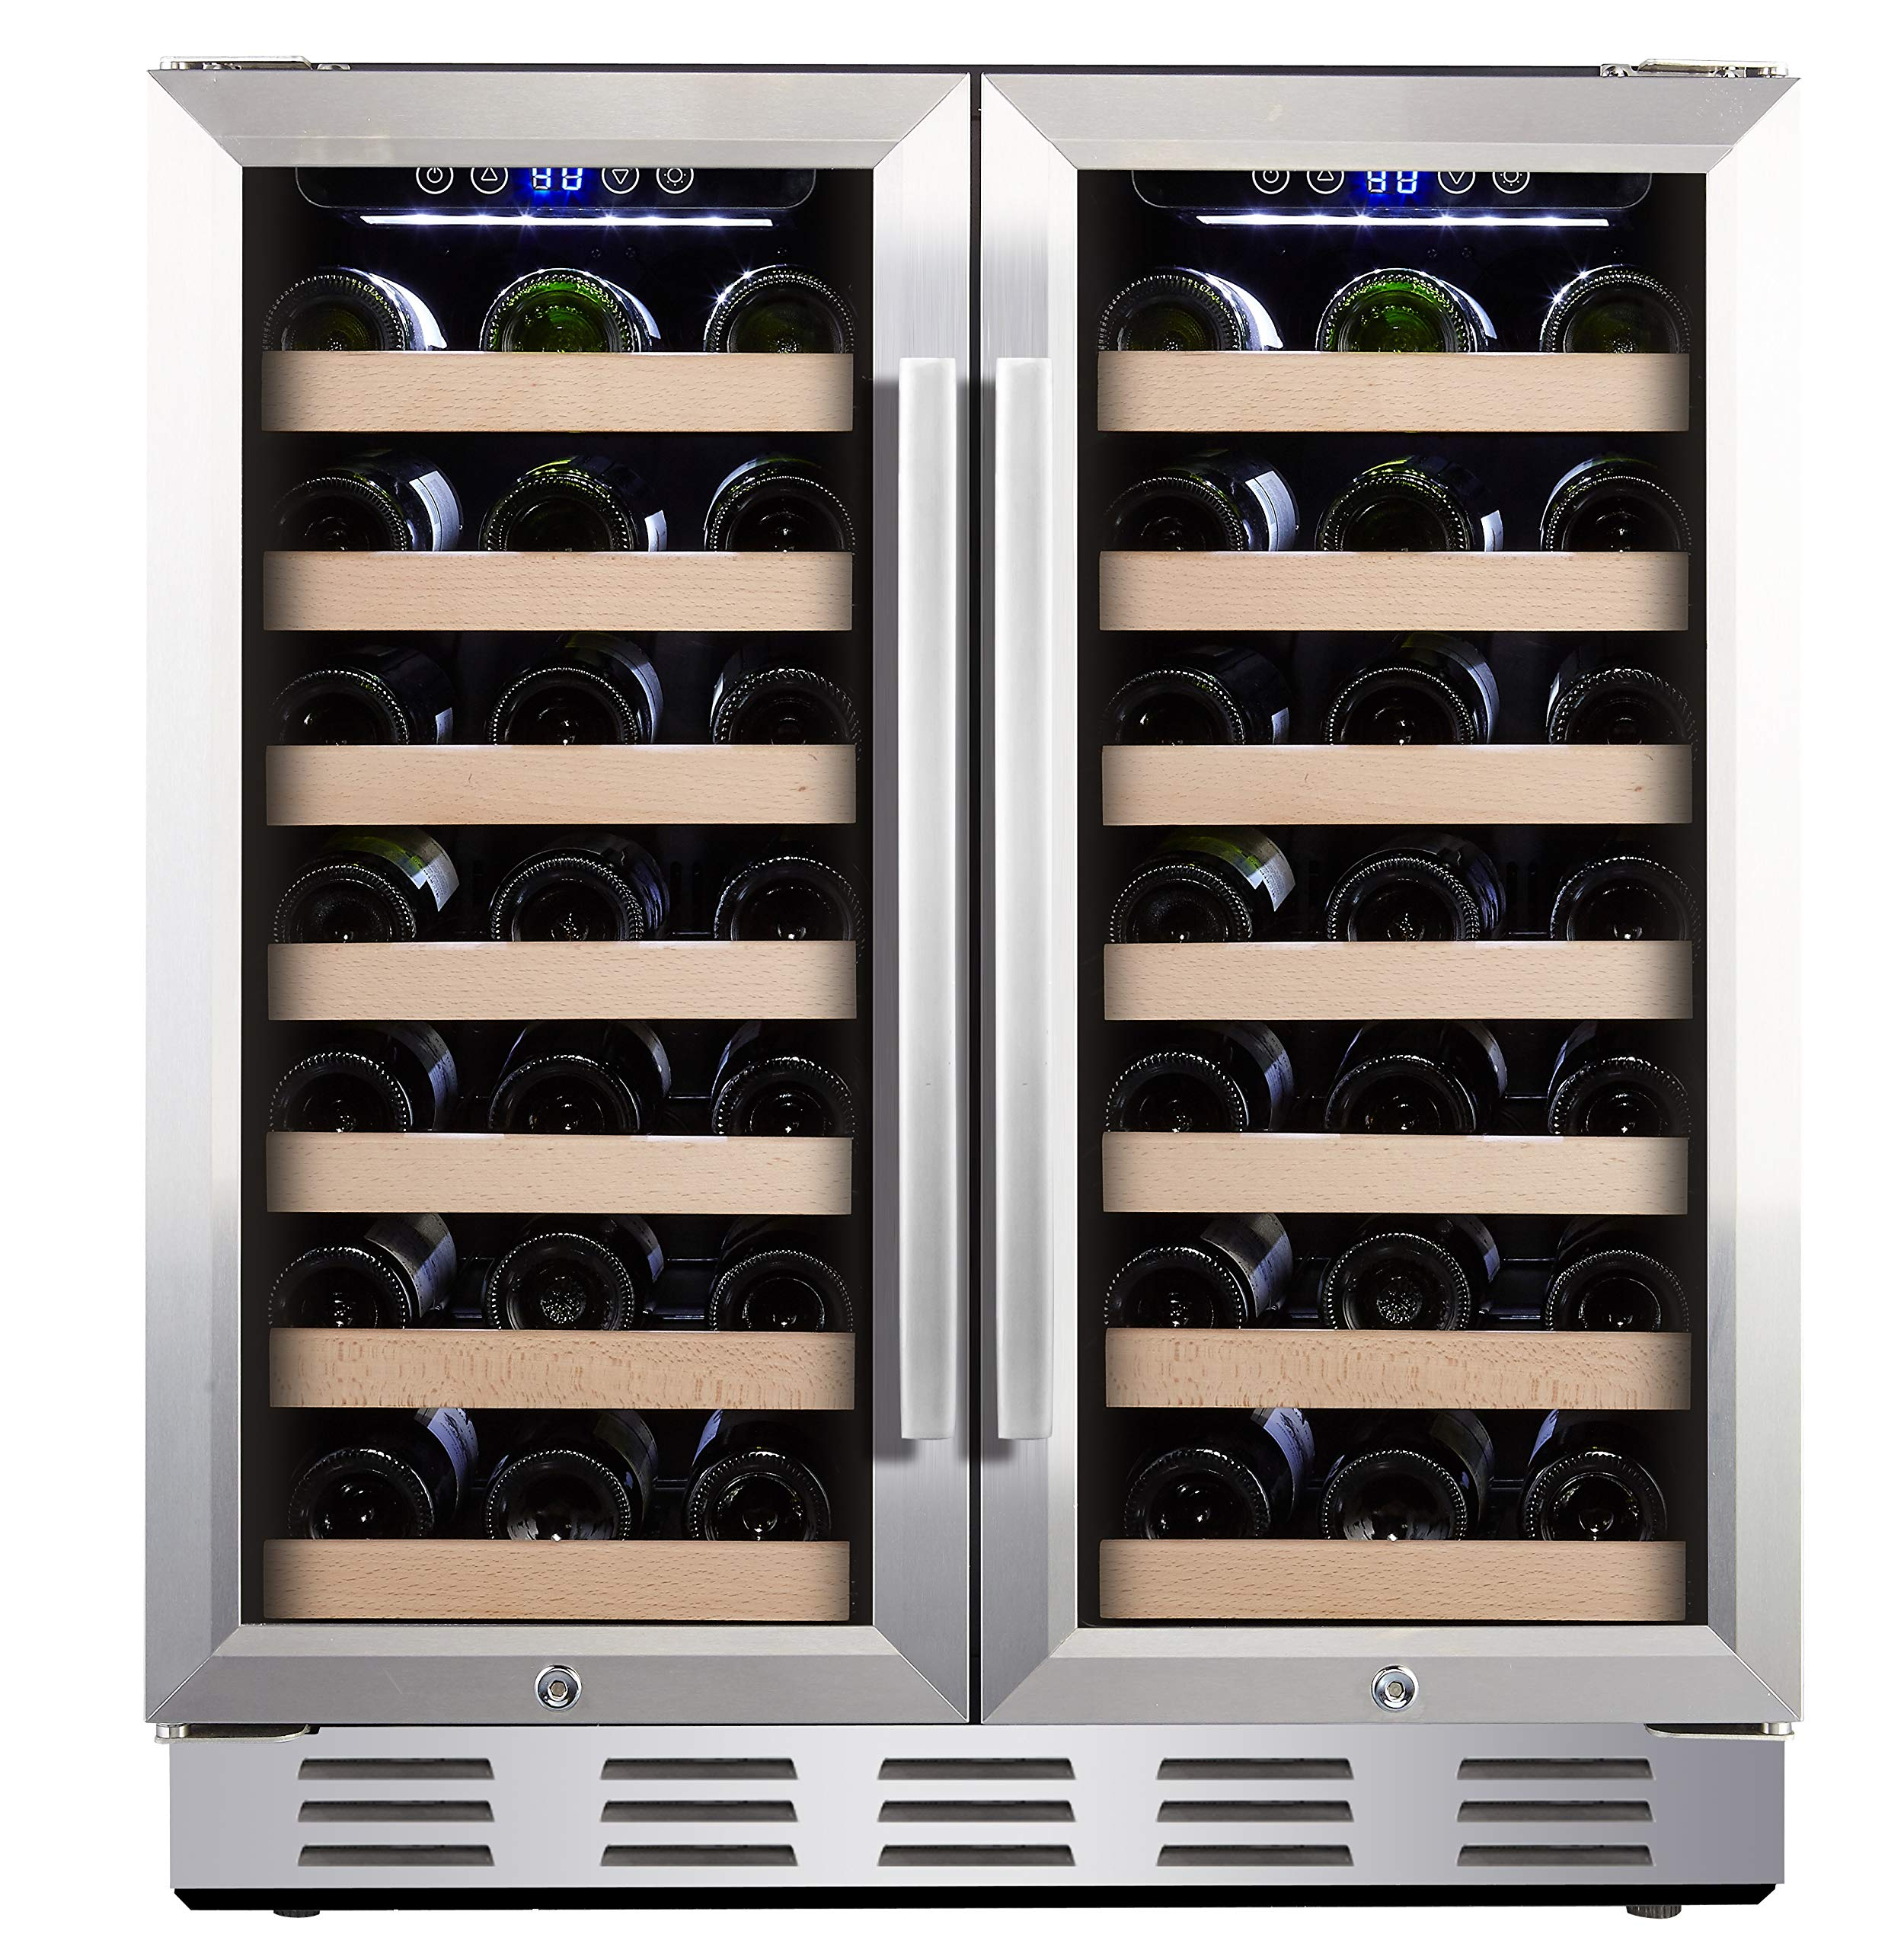 Kalamera 30'' Wine Cooler 66 Bottle Dual Zone Built-in and Freestanding with Stainless Steel and Glass French-Door Style by Kalamera